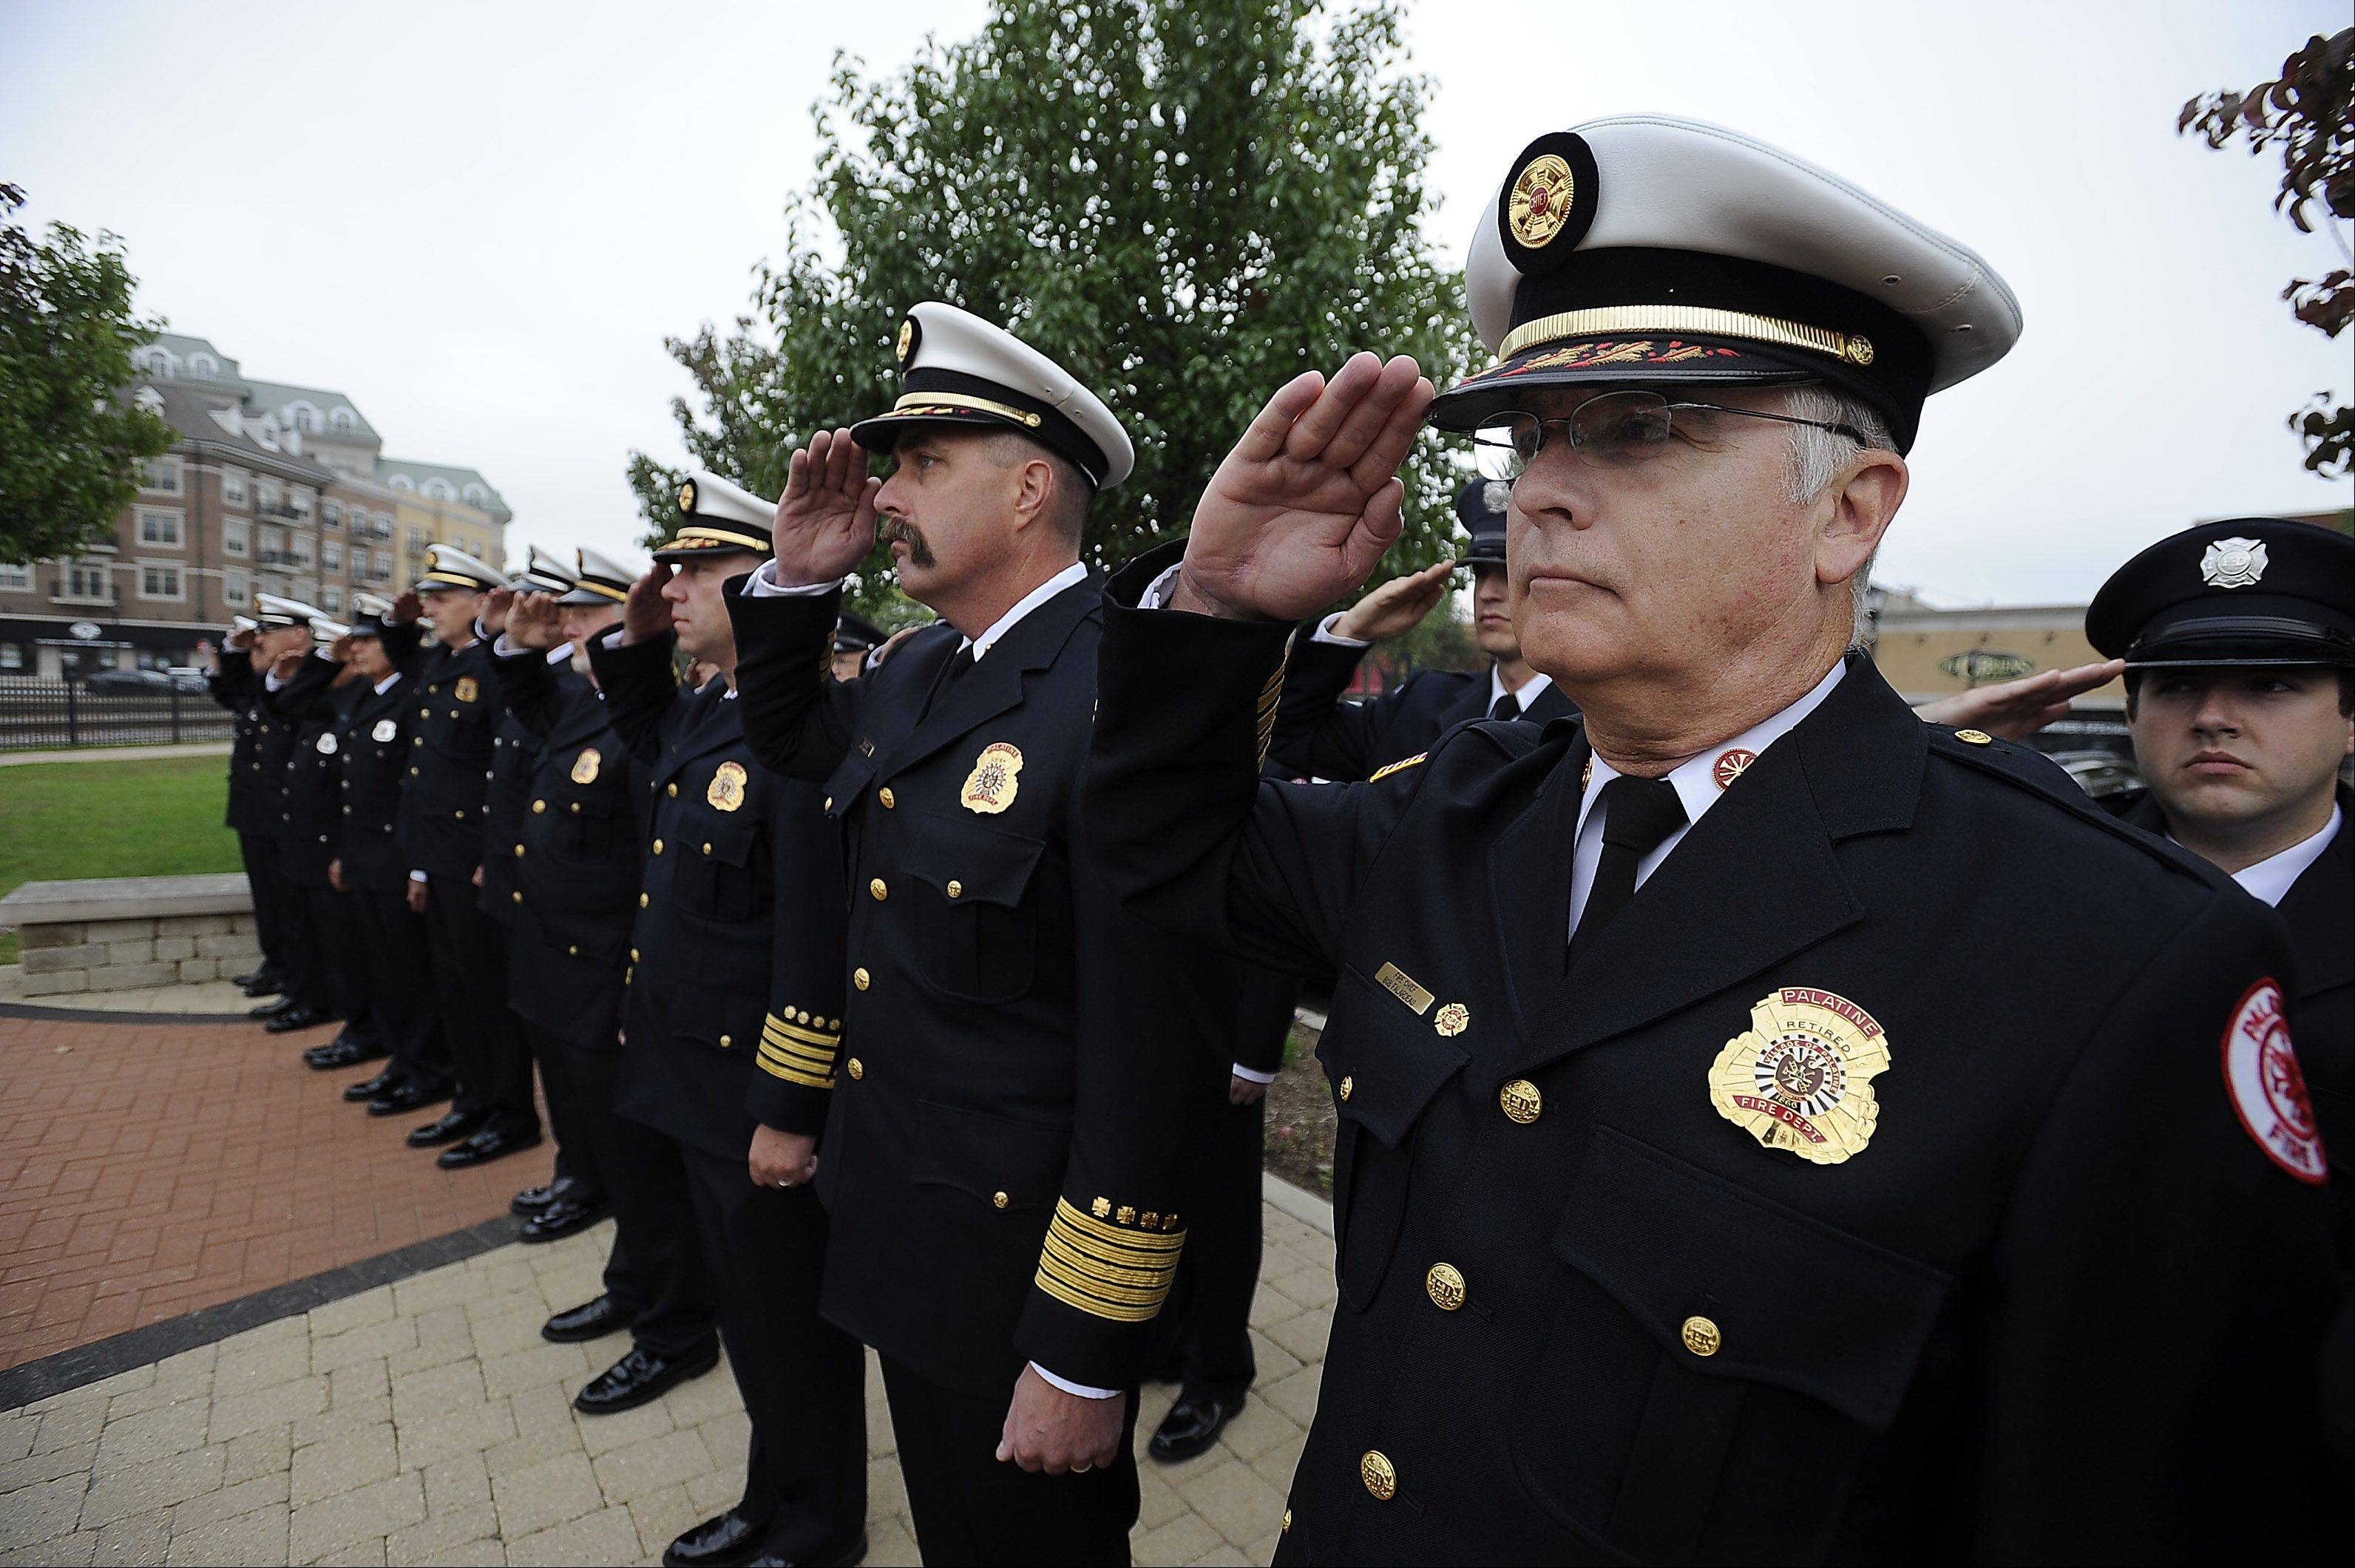 Retired Palatine firefighter Bob Falardeau (right) and Palatine Fire Chief Scott Andersen salute during a ceremony Tuesday morning at the Firefighter's Memorial in downtown Palatine. The ceremony honored two volunteer firefighters who died after a passenger train struck their fire truck Oct. 1, 1946.